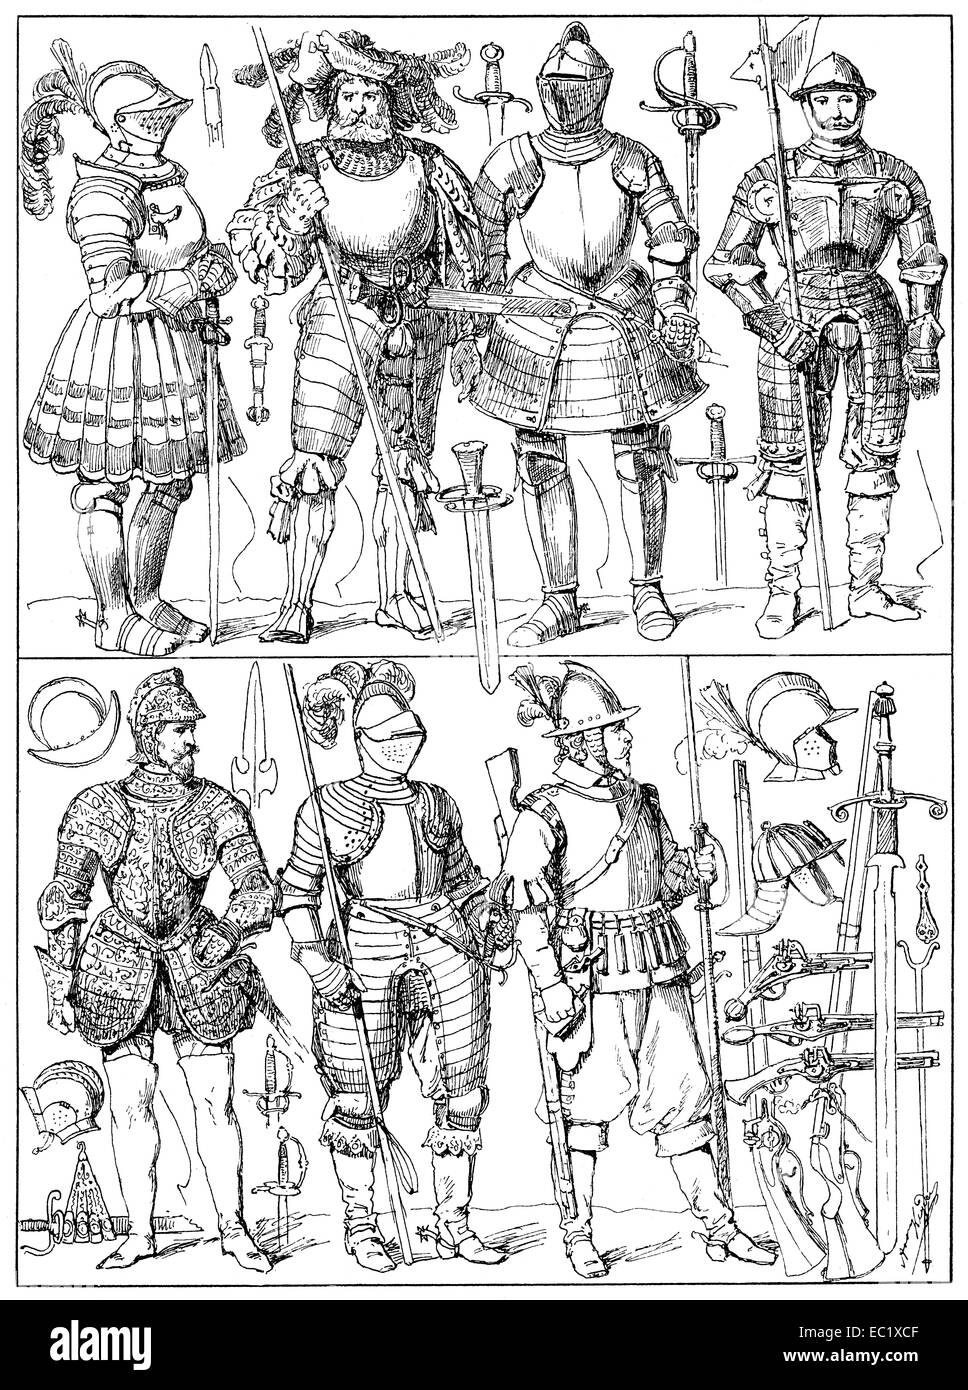 weapons of the 17th century, Germany, Europe, - Stock Image